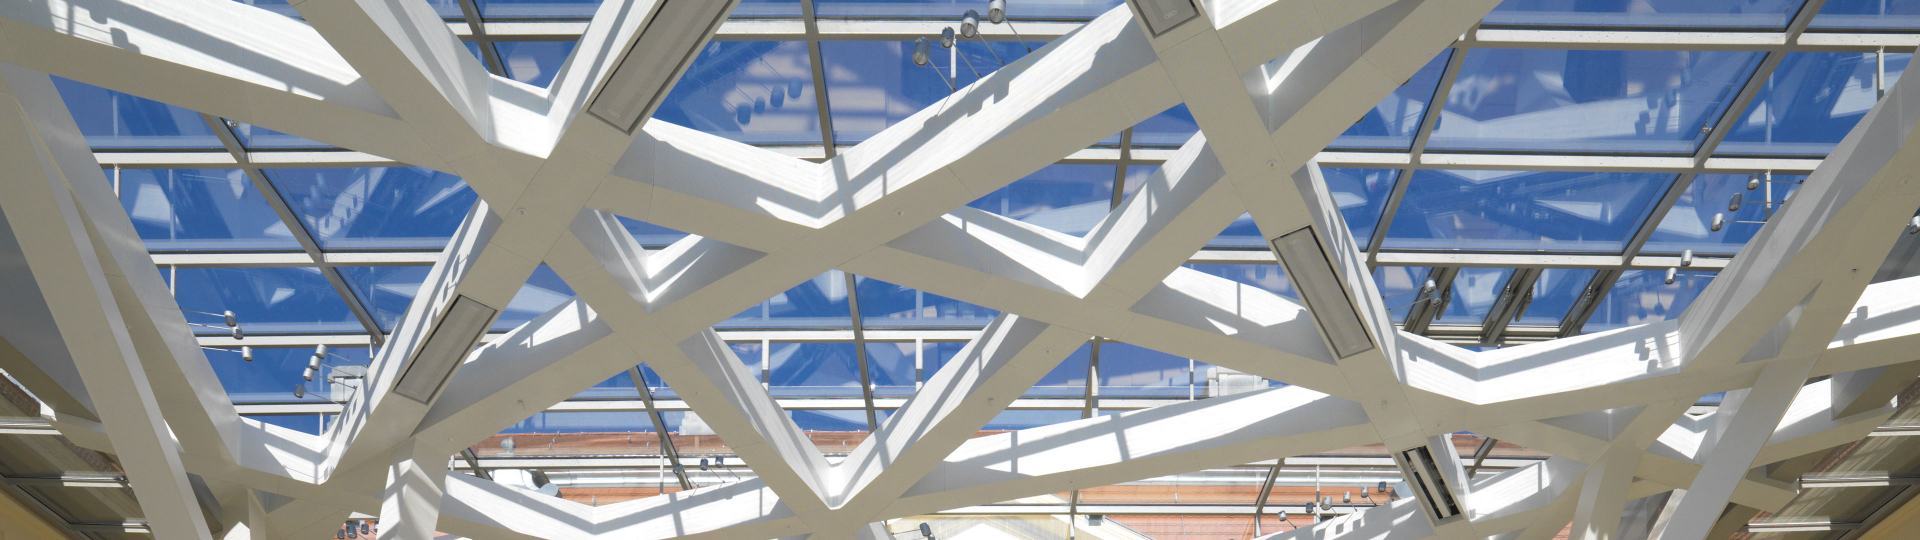 Ceiling of the Glass Courtyard against the blue sky